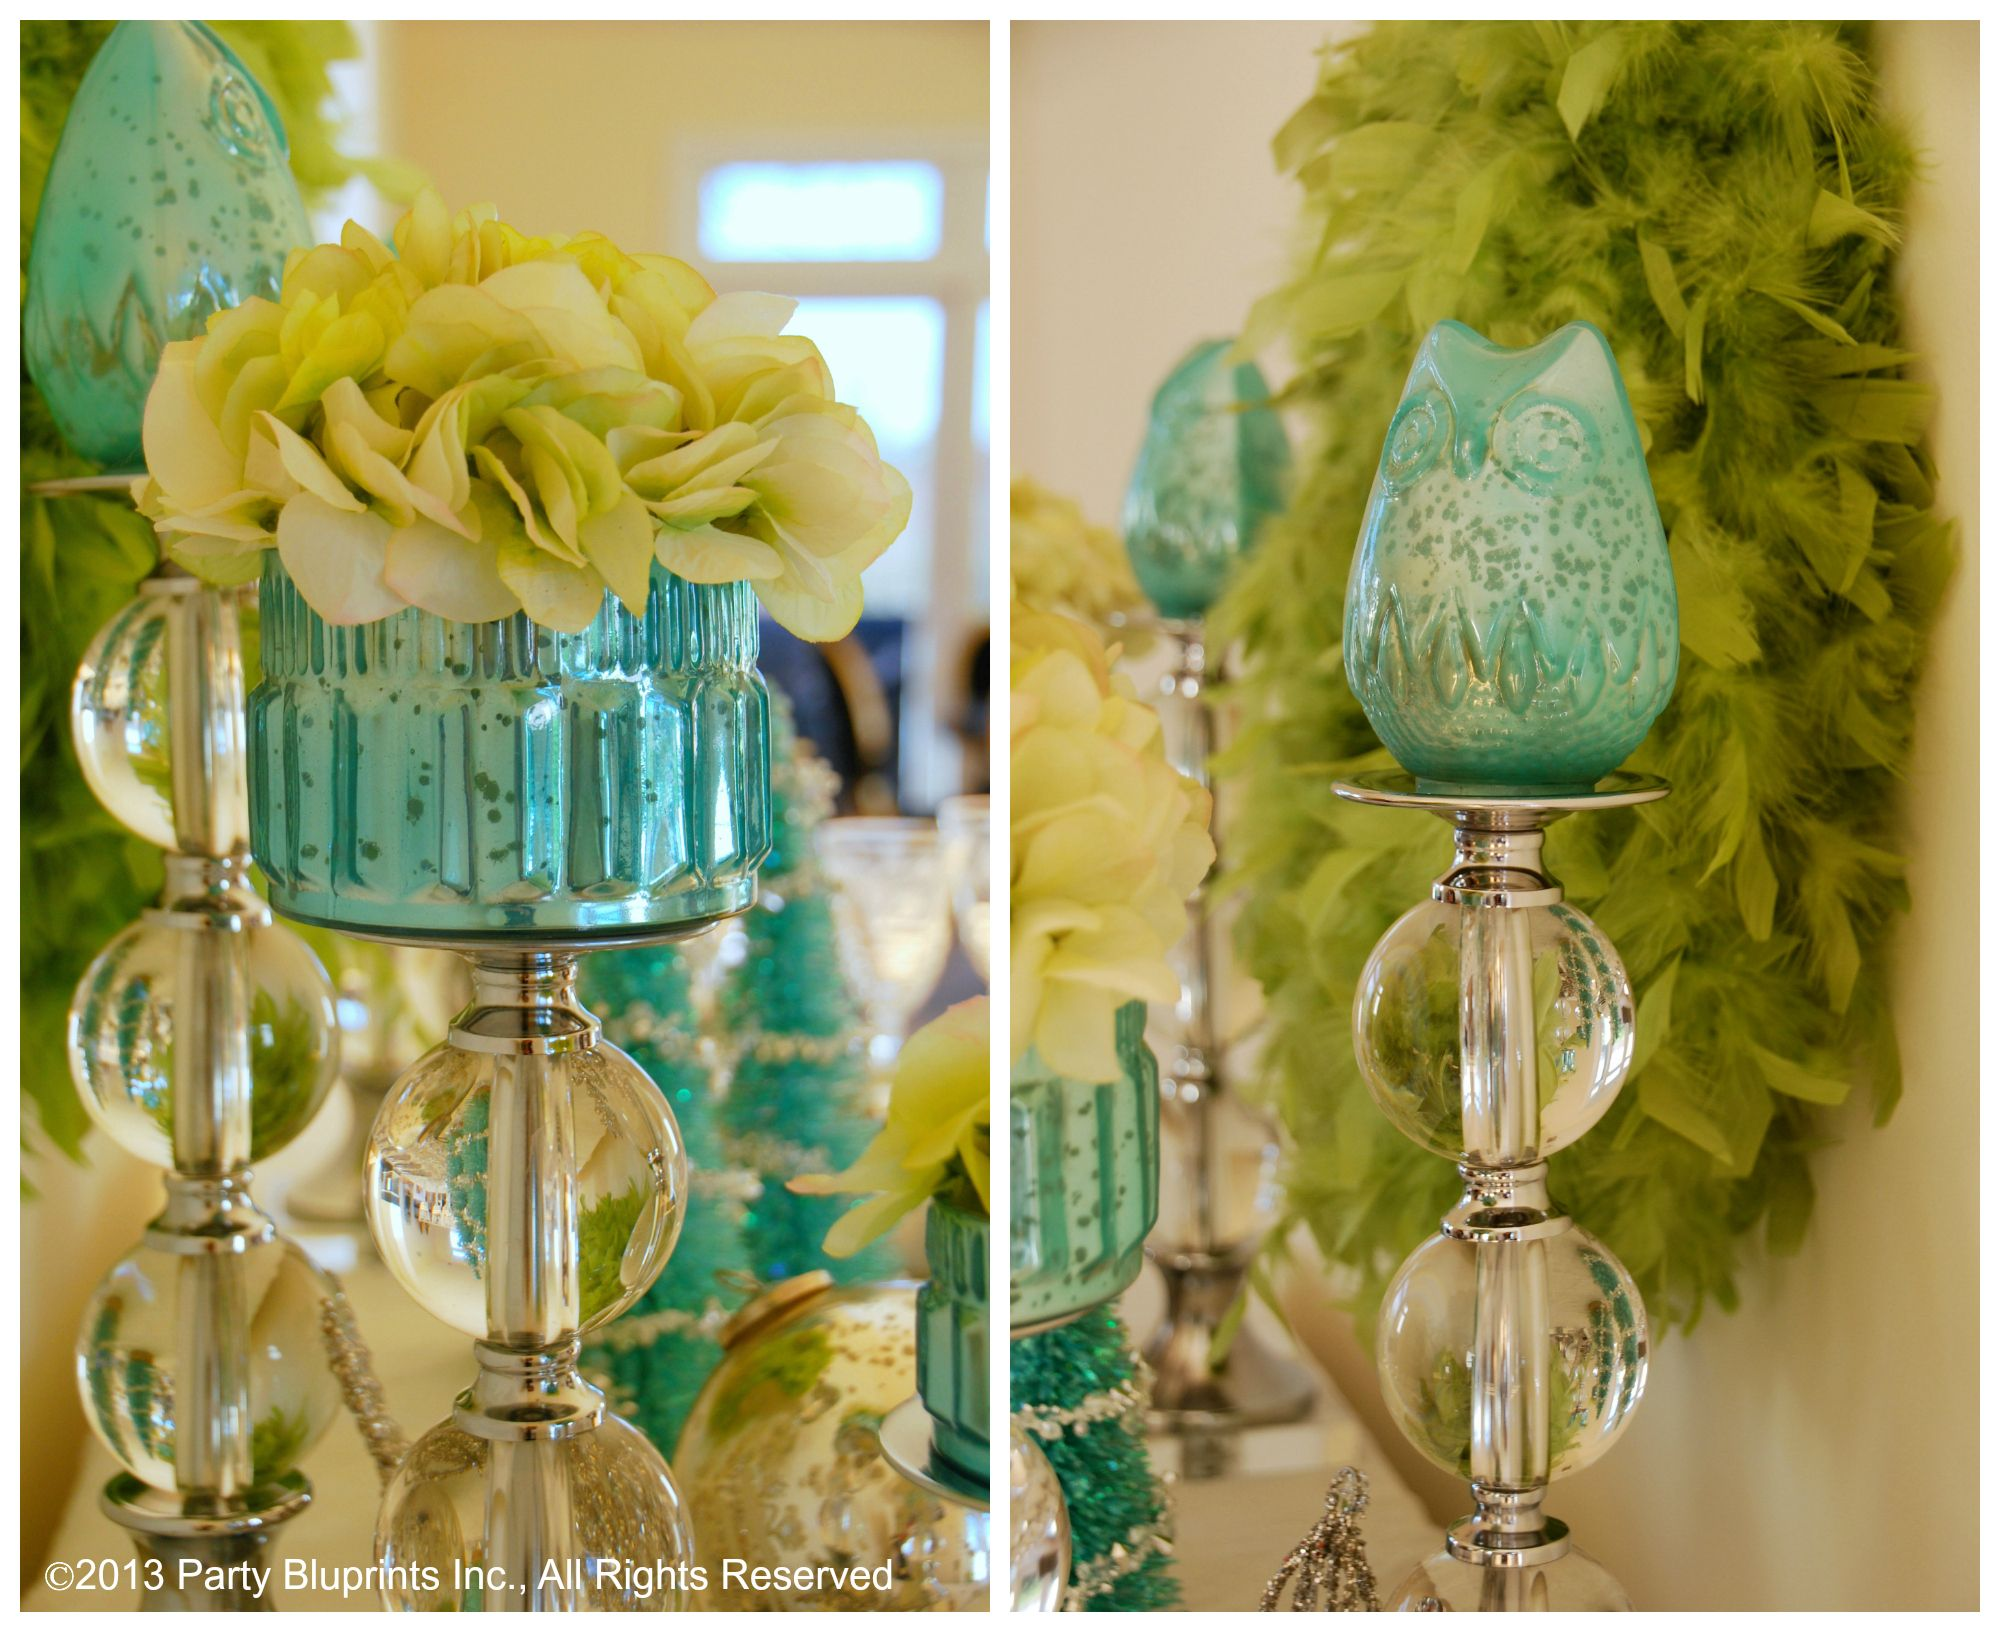 Blue christmas decorations party ideas blue christmas decorations - Cool Blue Mercury Glass Owls And Green Feathers